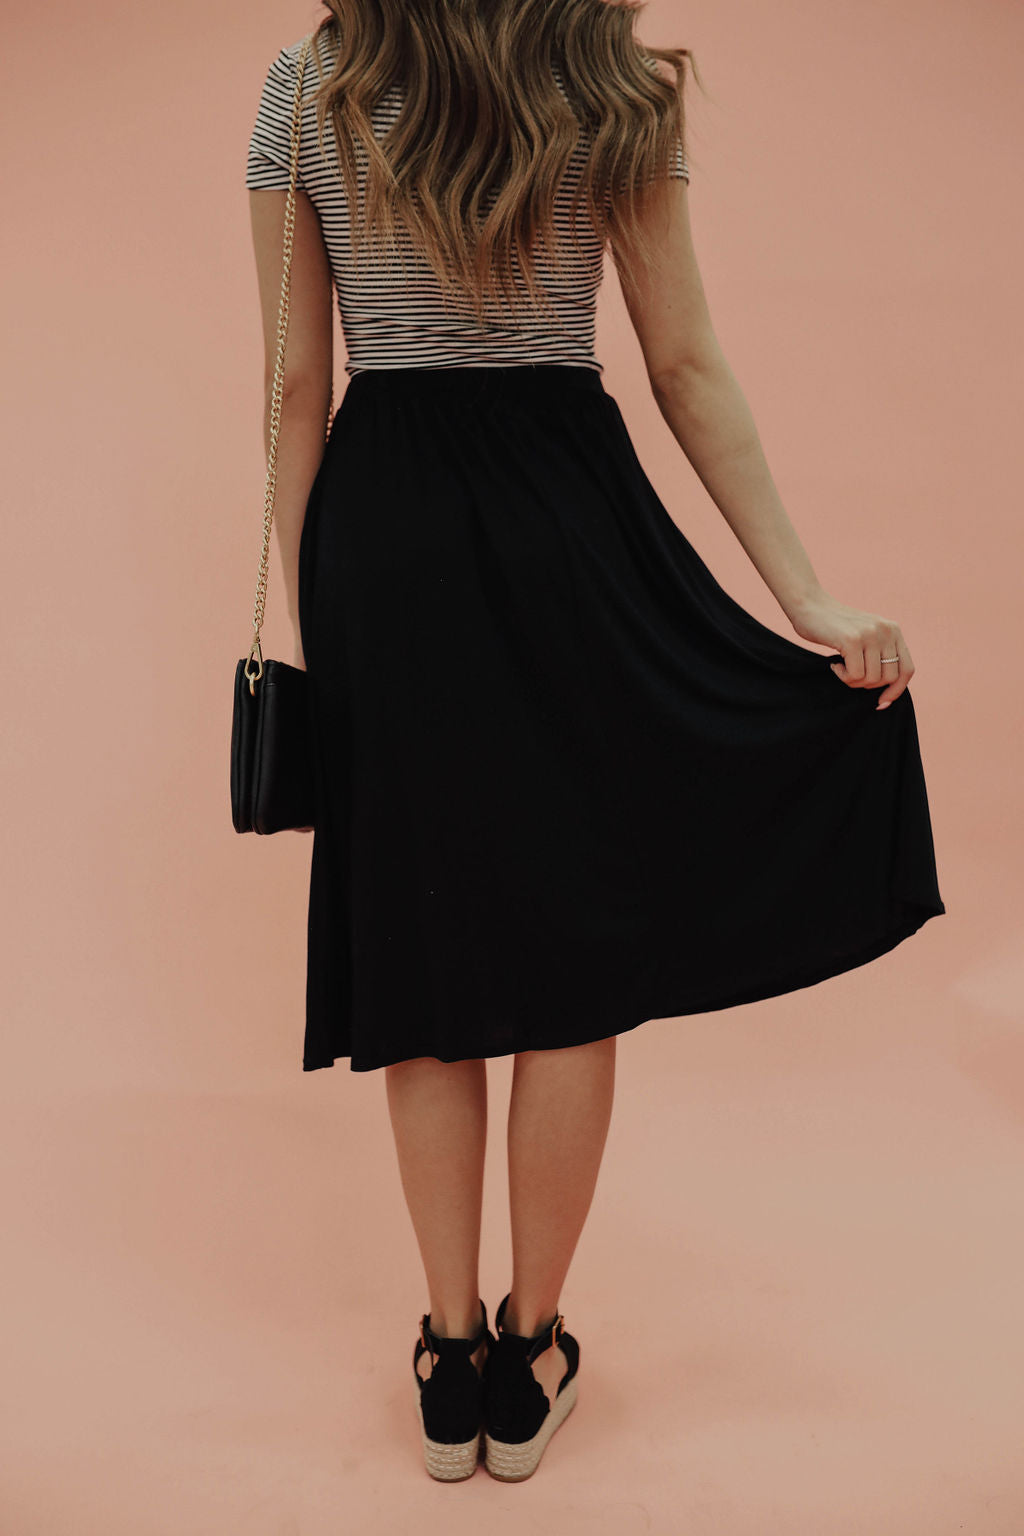 THE ELLA ELASTIC WAISTBAND SKIRT IN BLACK